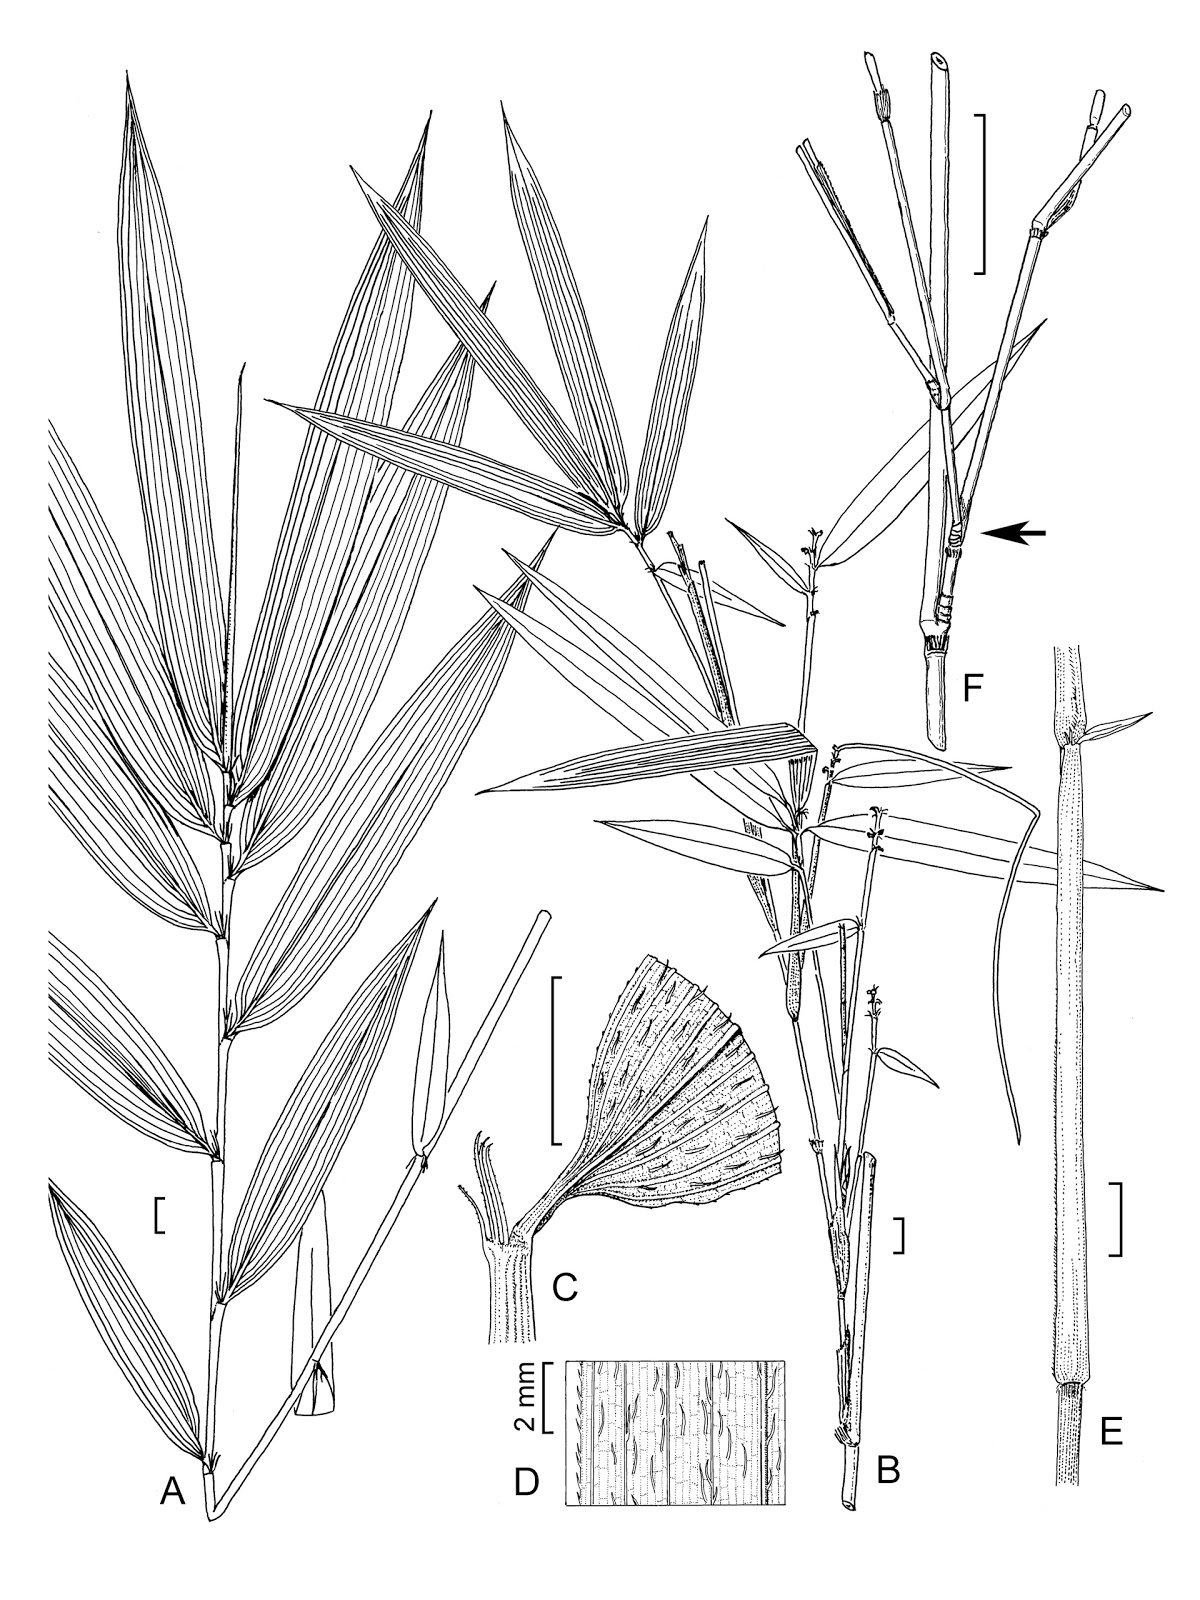 how to draw bamboo leaves bamboo grove photo bamboo drawings how to bamboo draw leaves